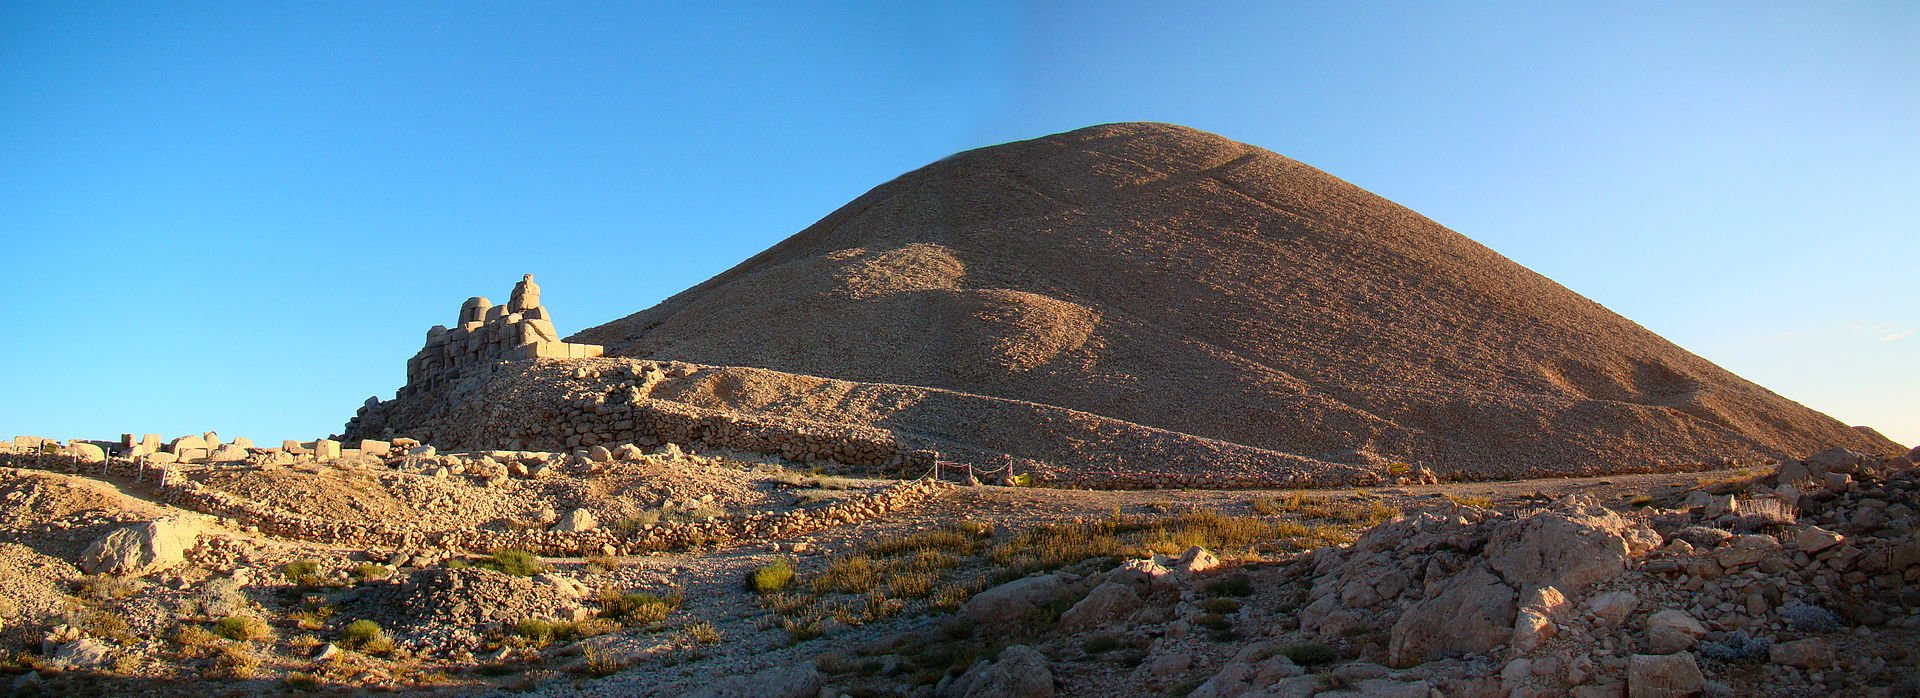 Mount Nemrut Travel Information